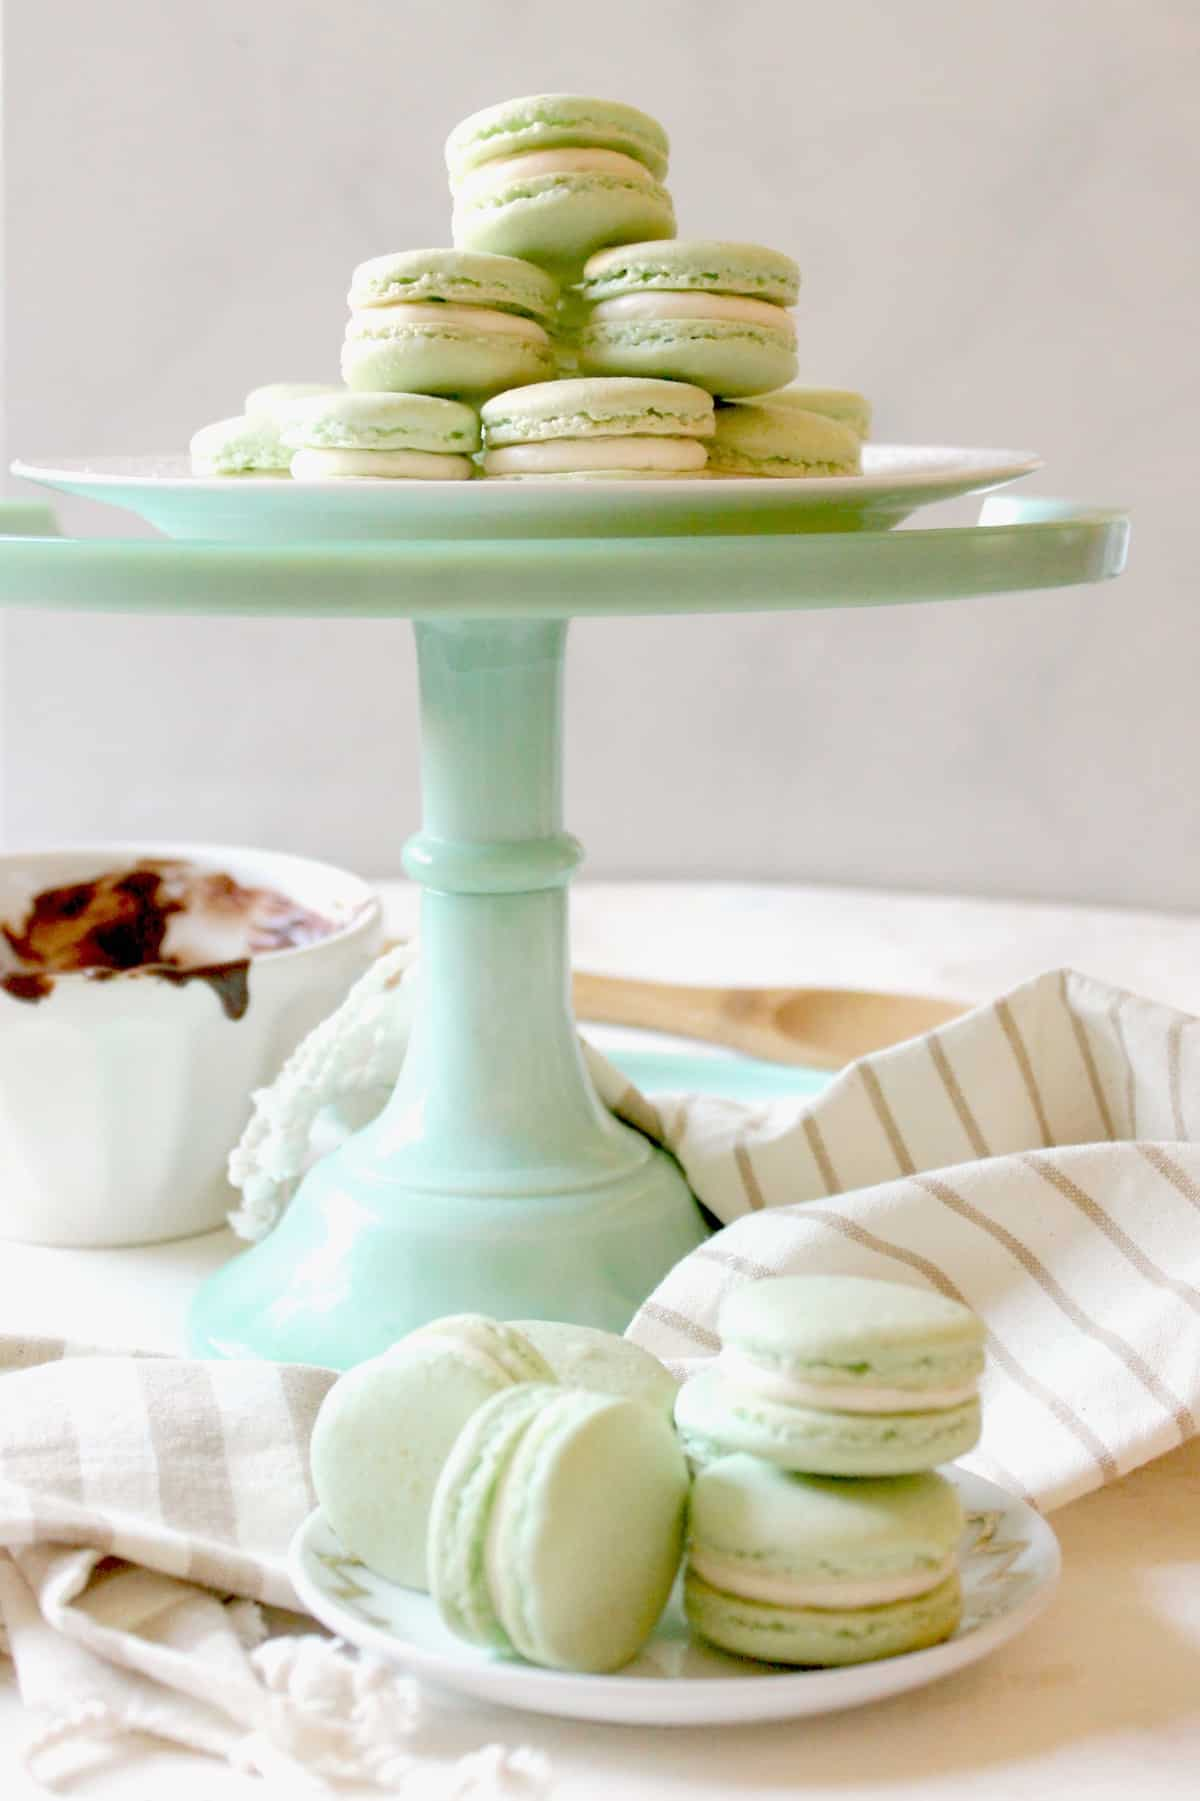 Dainty Irish Cream French Macarons are filled with a sweet chocolate center